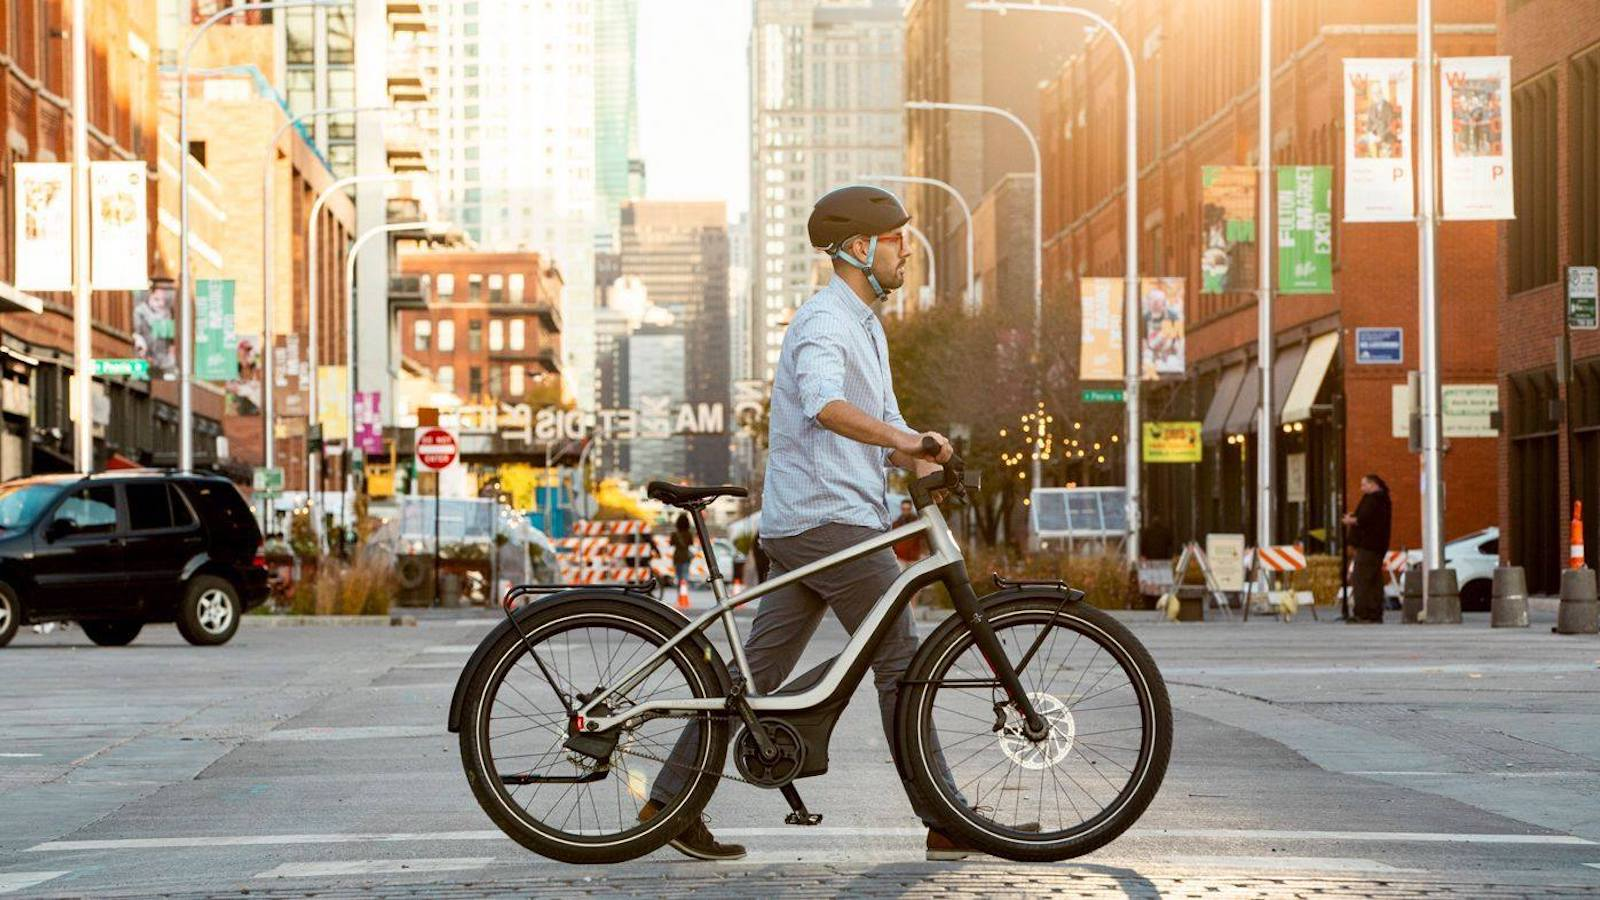 Serial 1 RUSH/CTY SPEED full-feature eBike has a 706 Wh battery and travels up to 28 mph